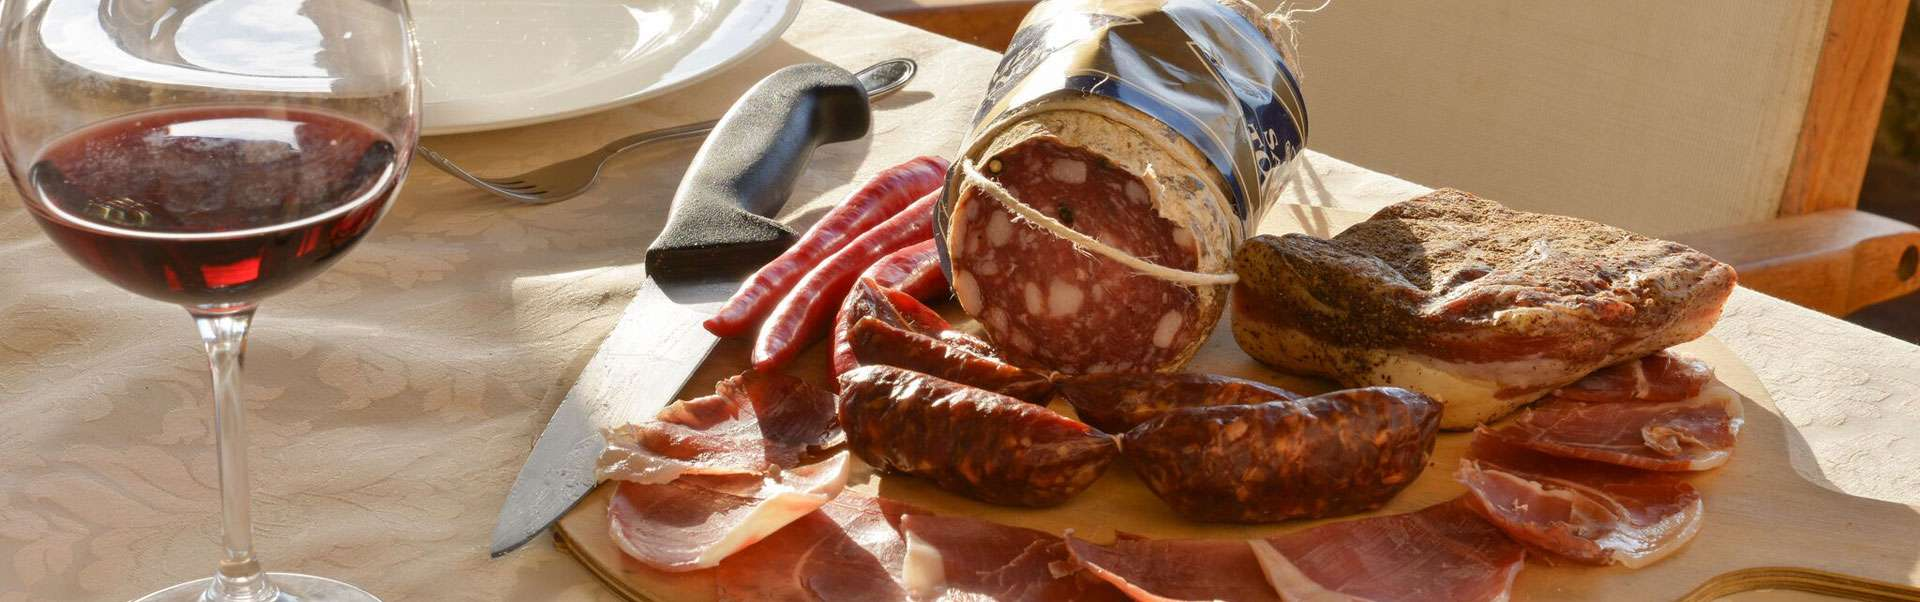 Tuscan Cured Meats: What are they and what's the difference?